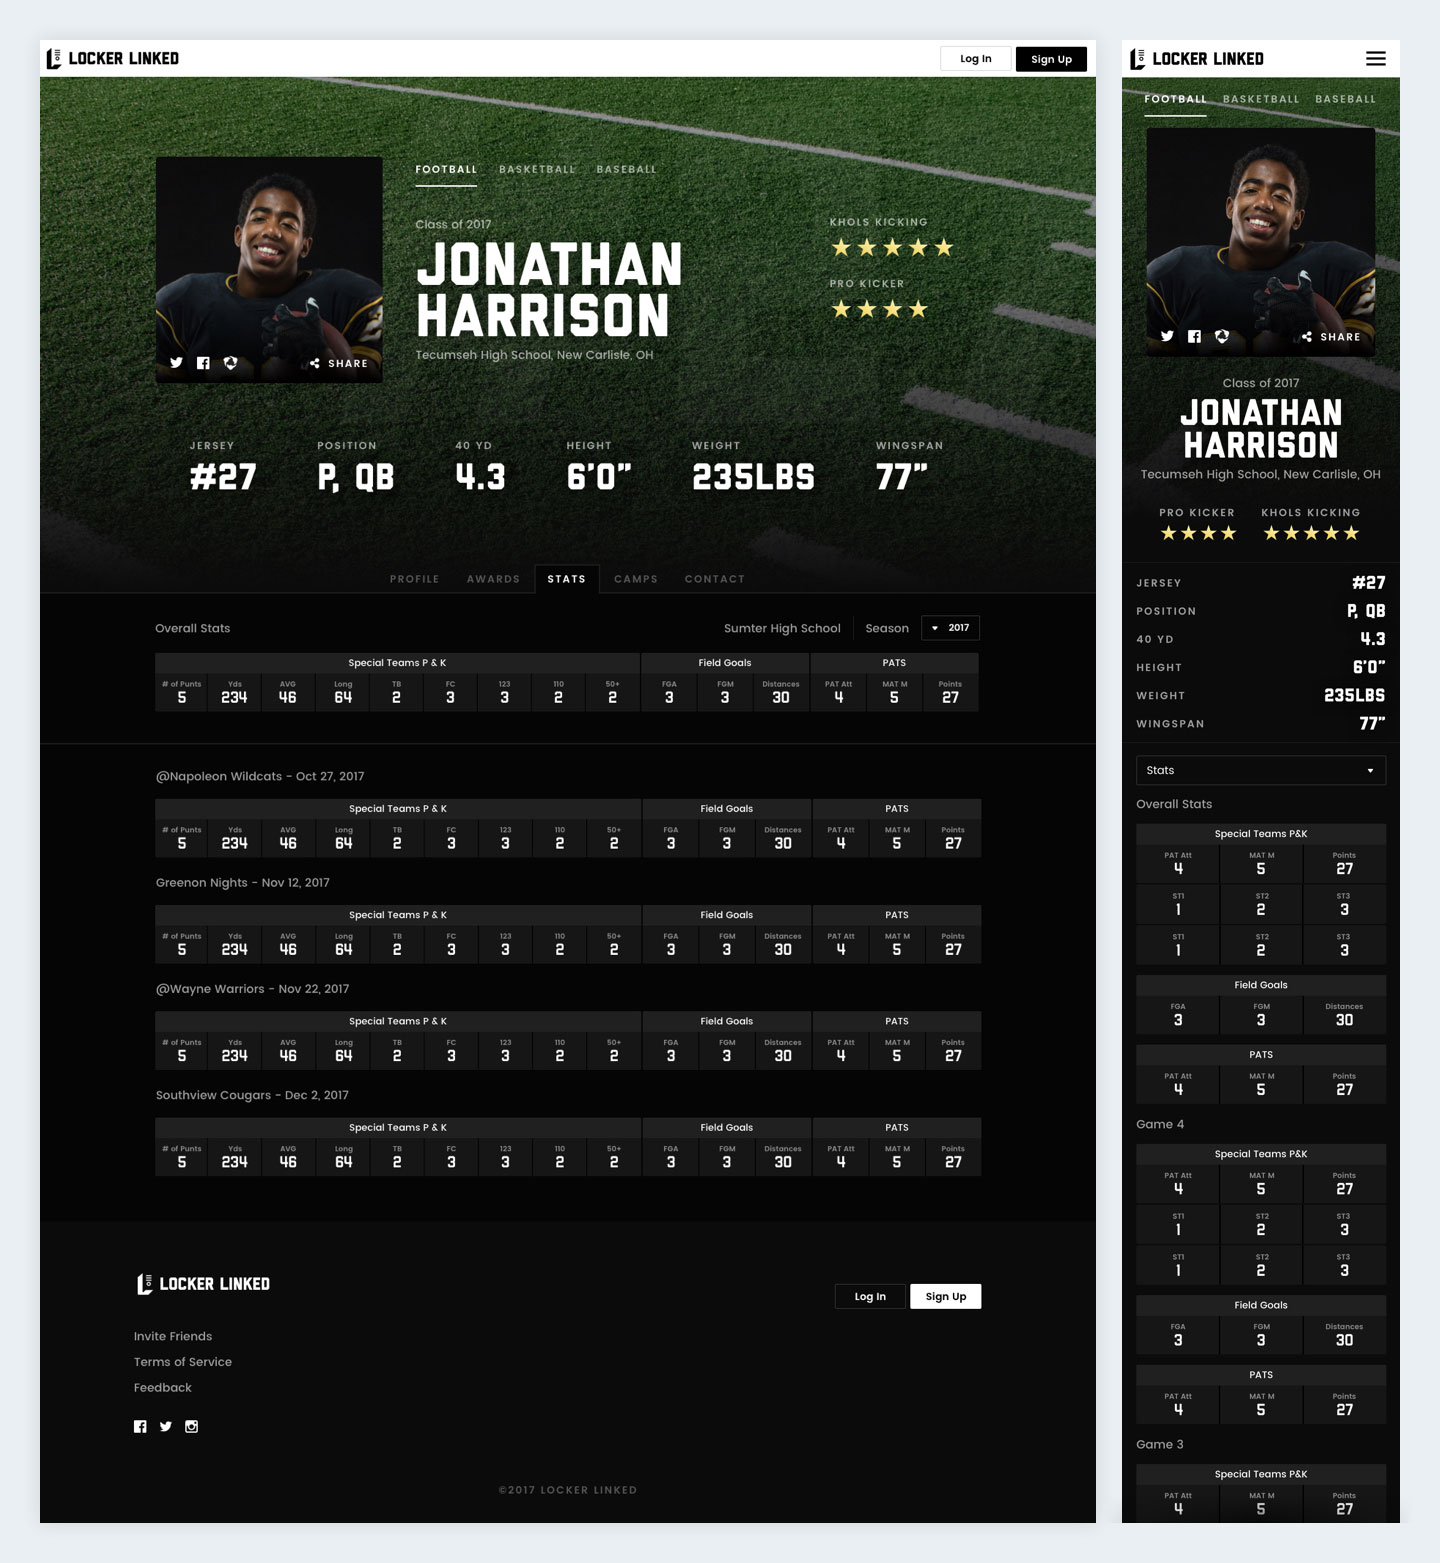 Locker Linked Athlete Profile Screenshot